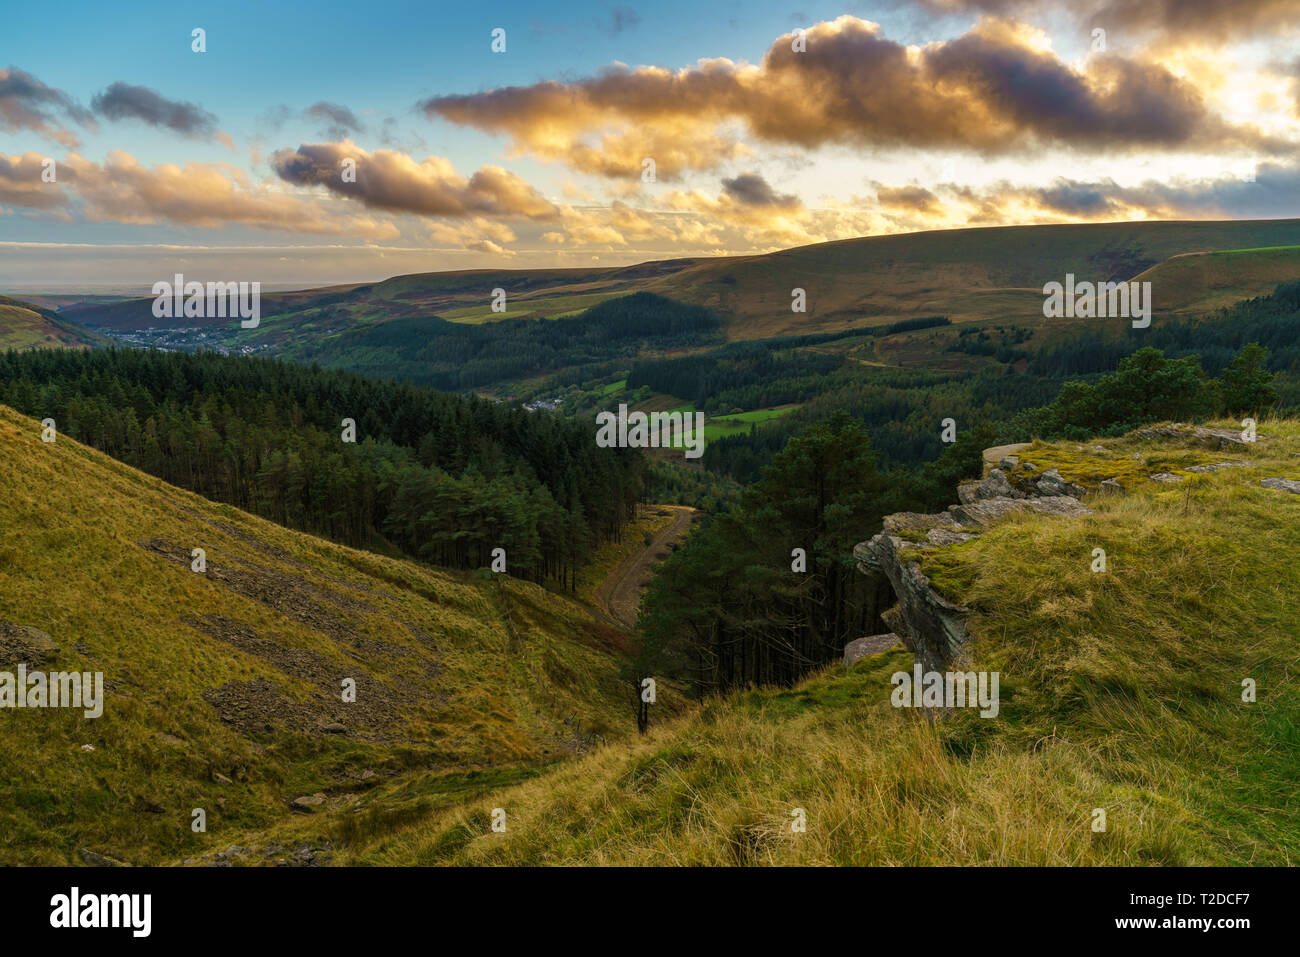 Evening view at the Ogmore Valley, seen from the A4061, Rhondda Cynon Taf, Mid Glamorgan, Wales, UK - Stock Image